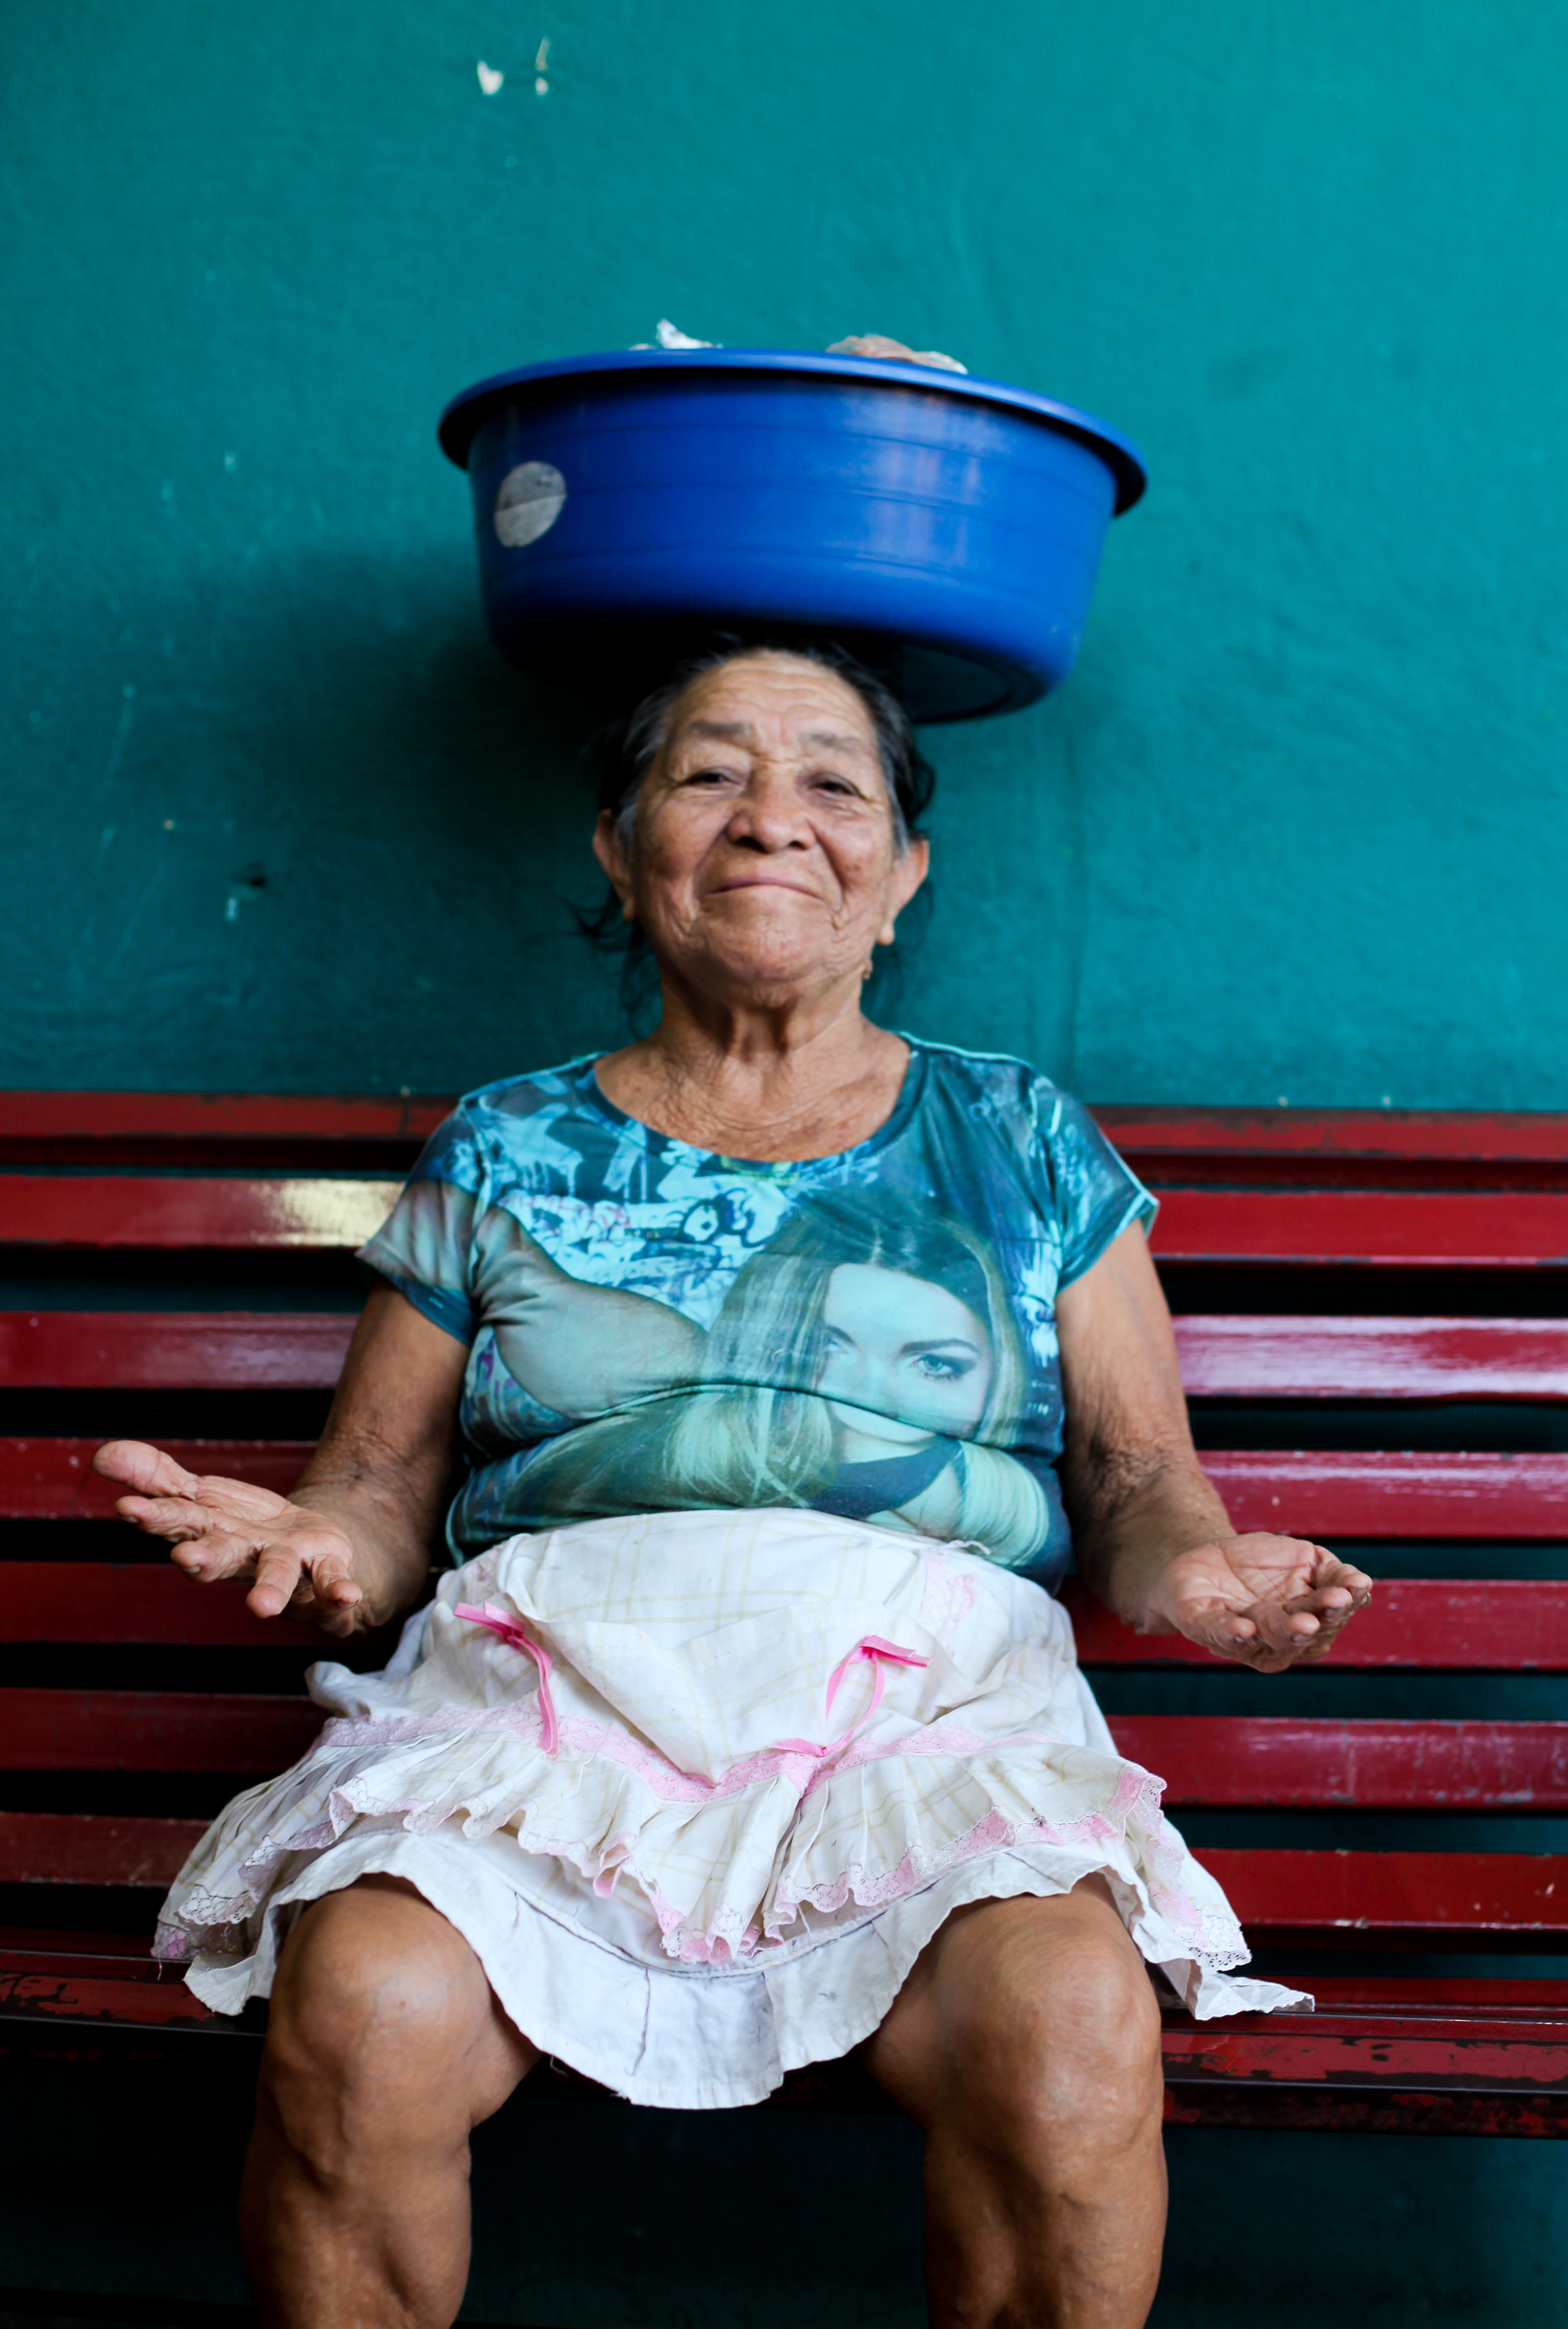 Laura's work focuses on portraiture. This image shows a market seller taking a break in Nicaragua.